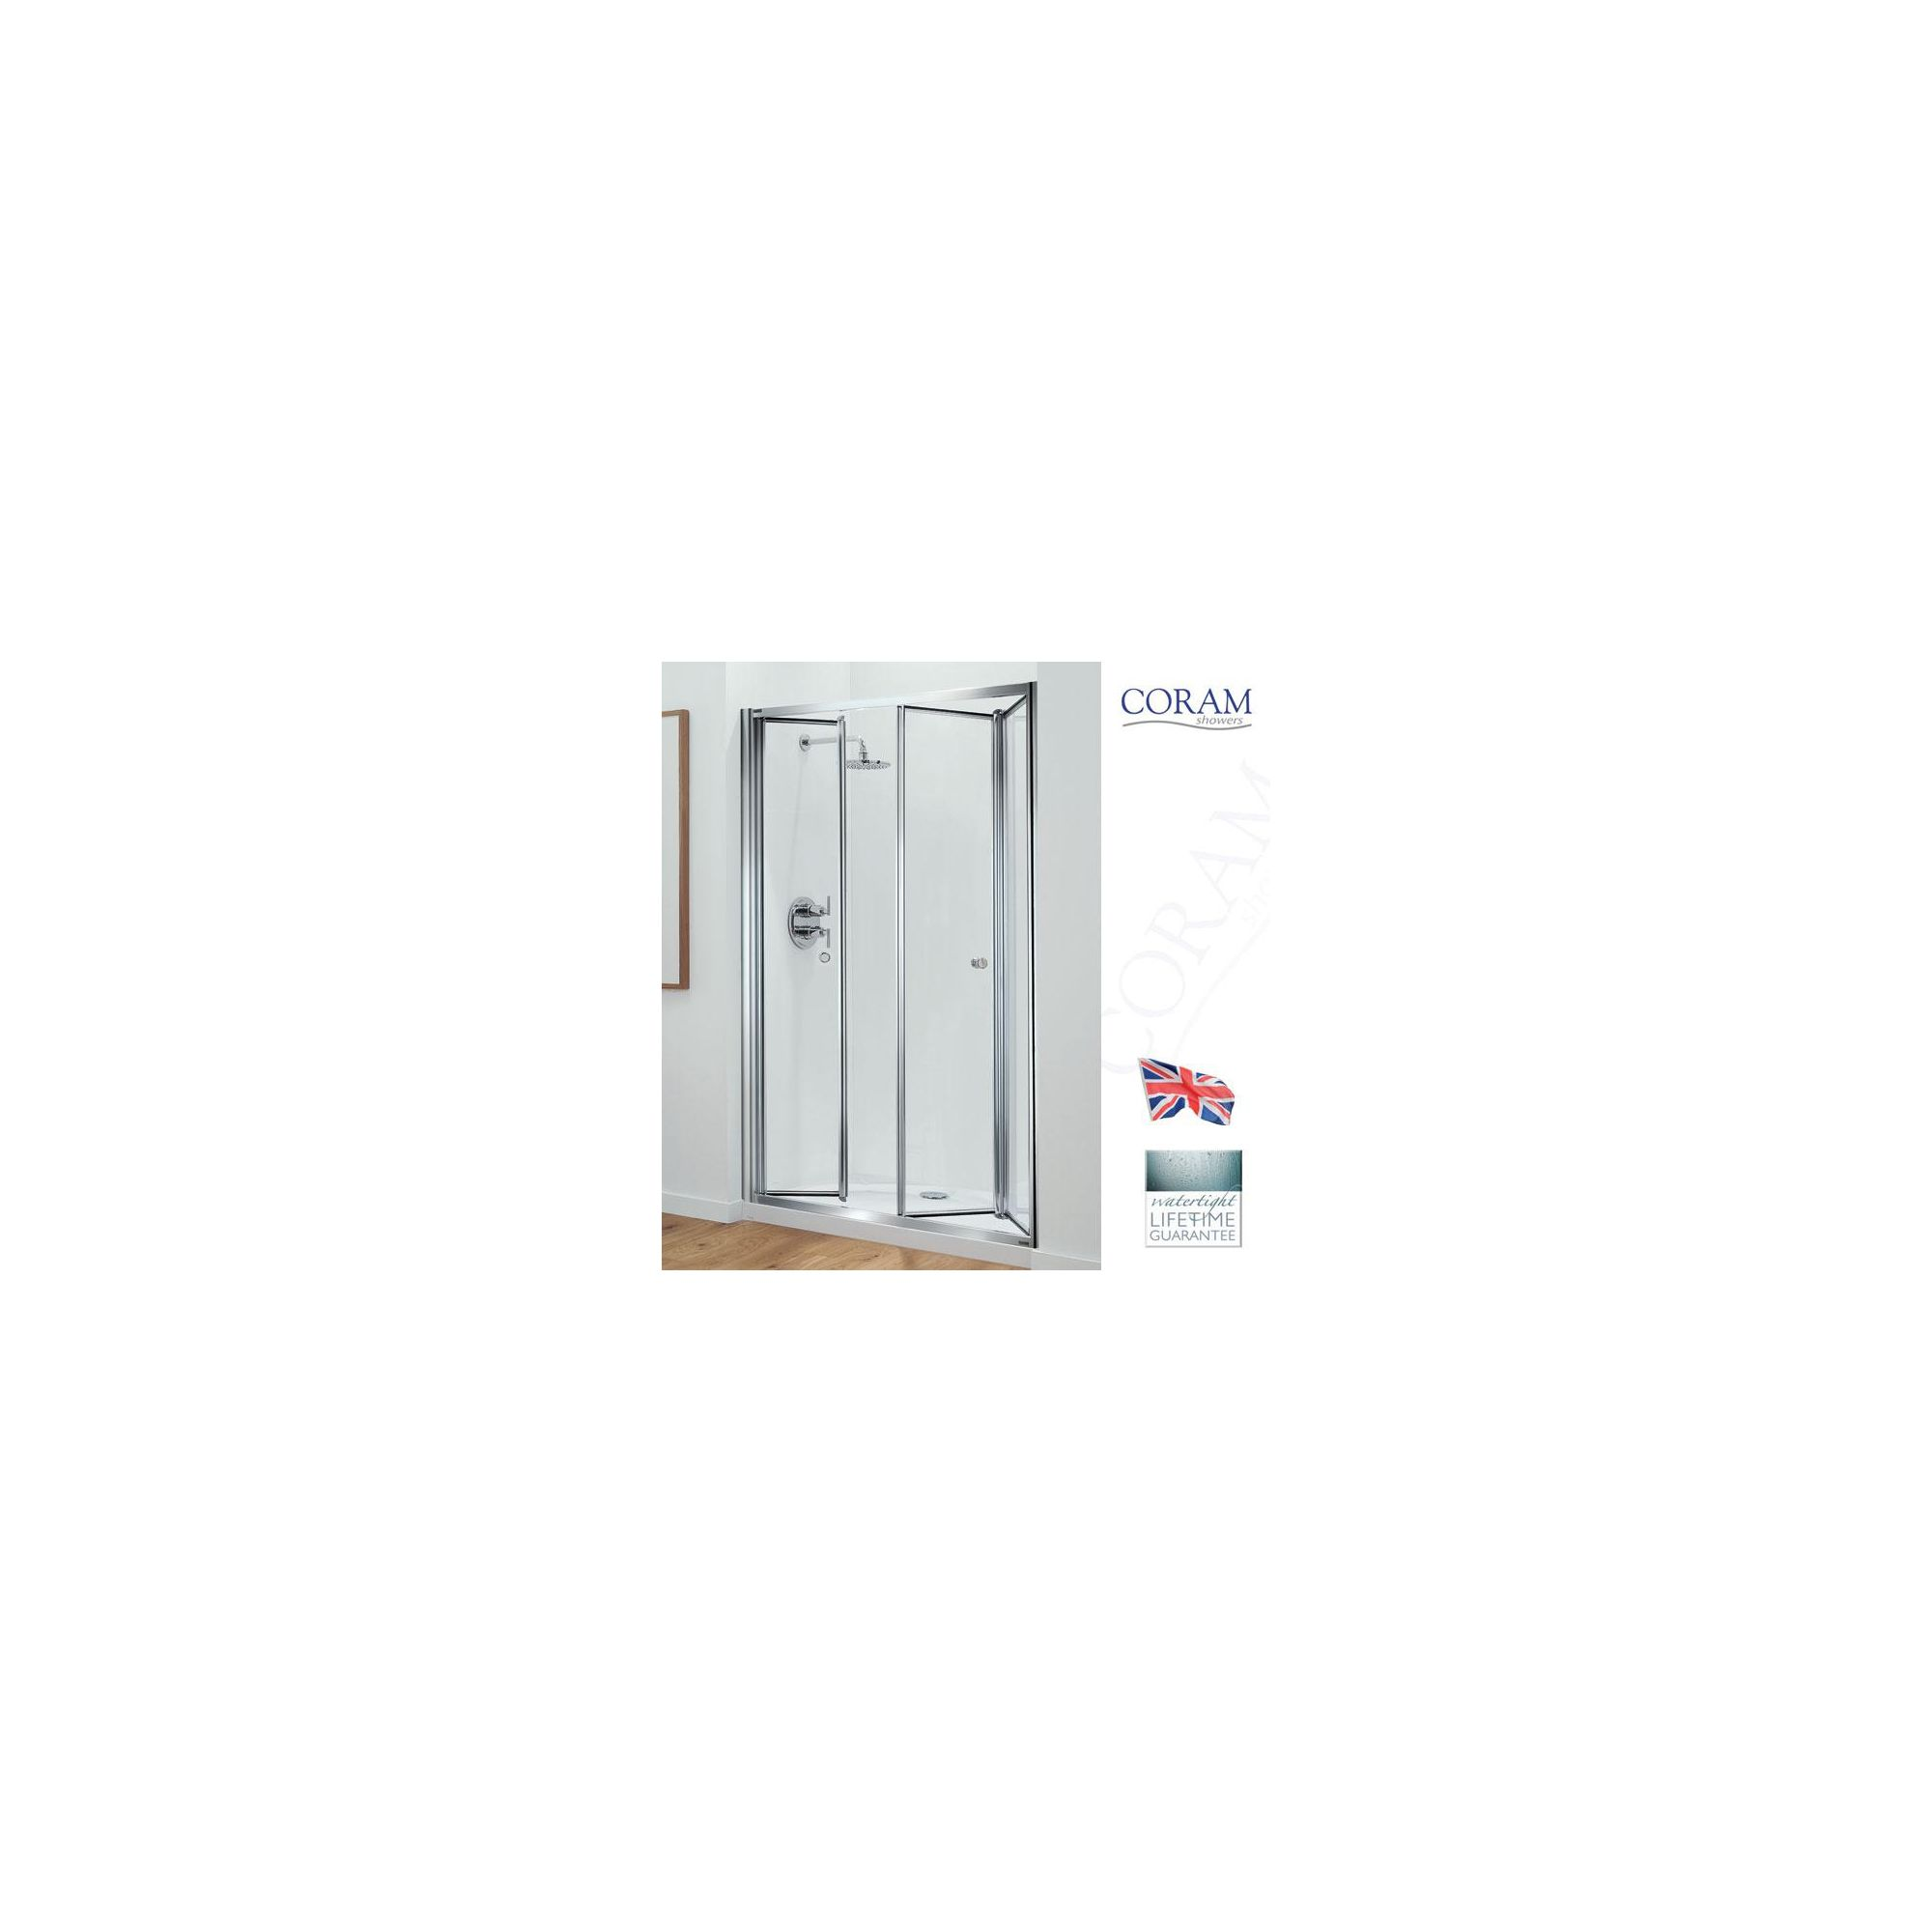 Coram Optima Tri-Fold Door ALCOVE Shower Enclosure, 1200mm x 800mm, Low Profile Tray, 6mm Glass at Tesco Direct